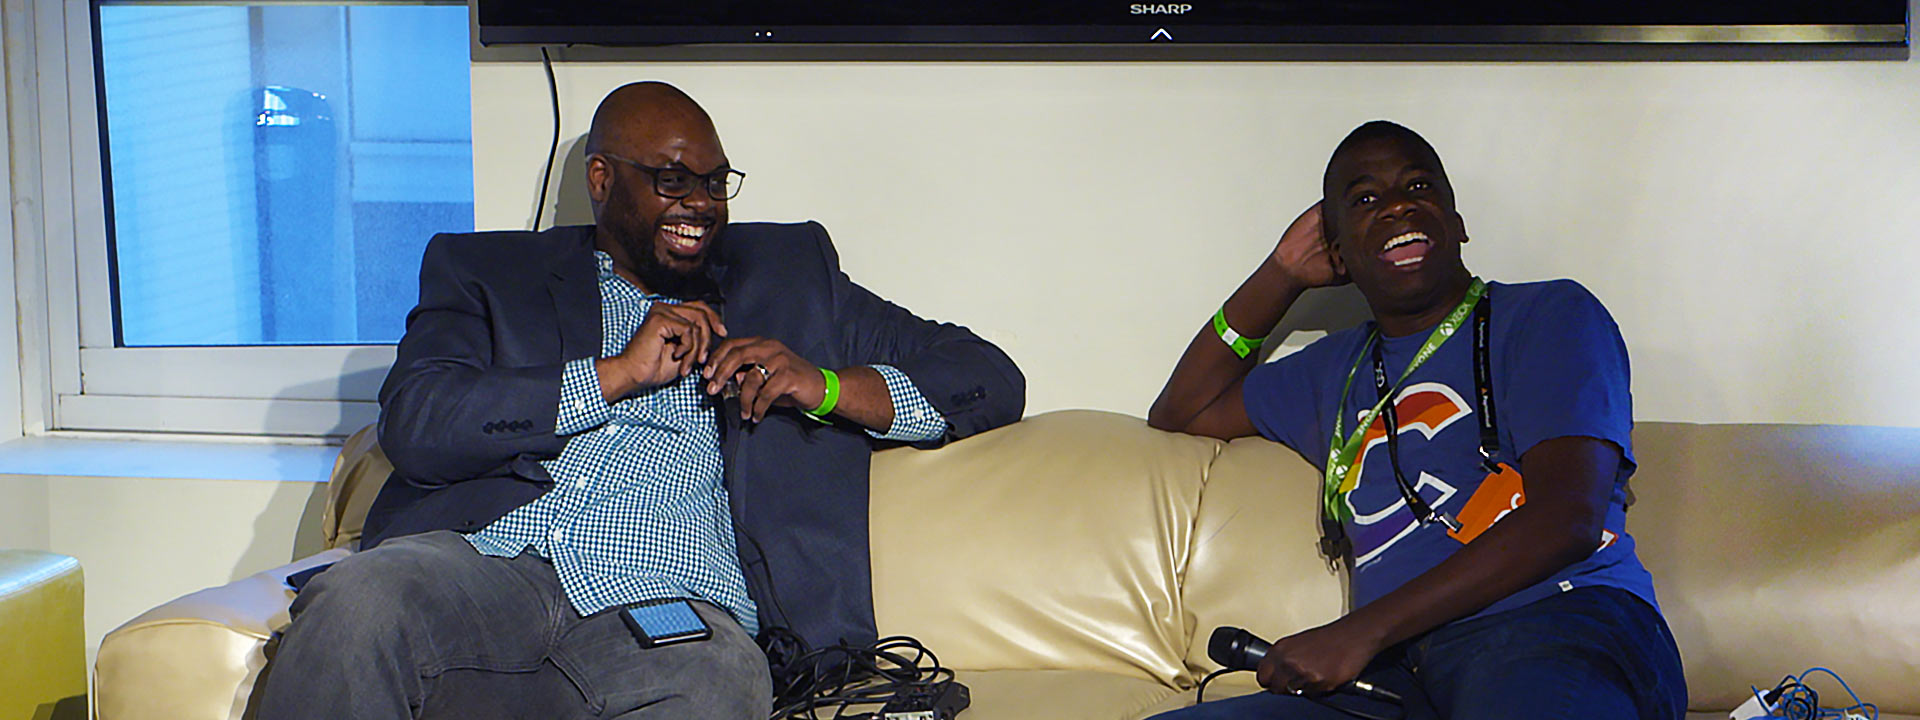 A gaming industry professional from the black community is interviewed on a couch